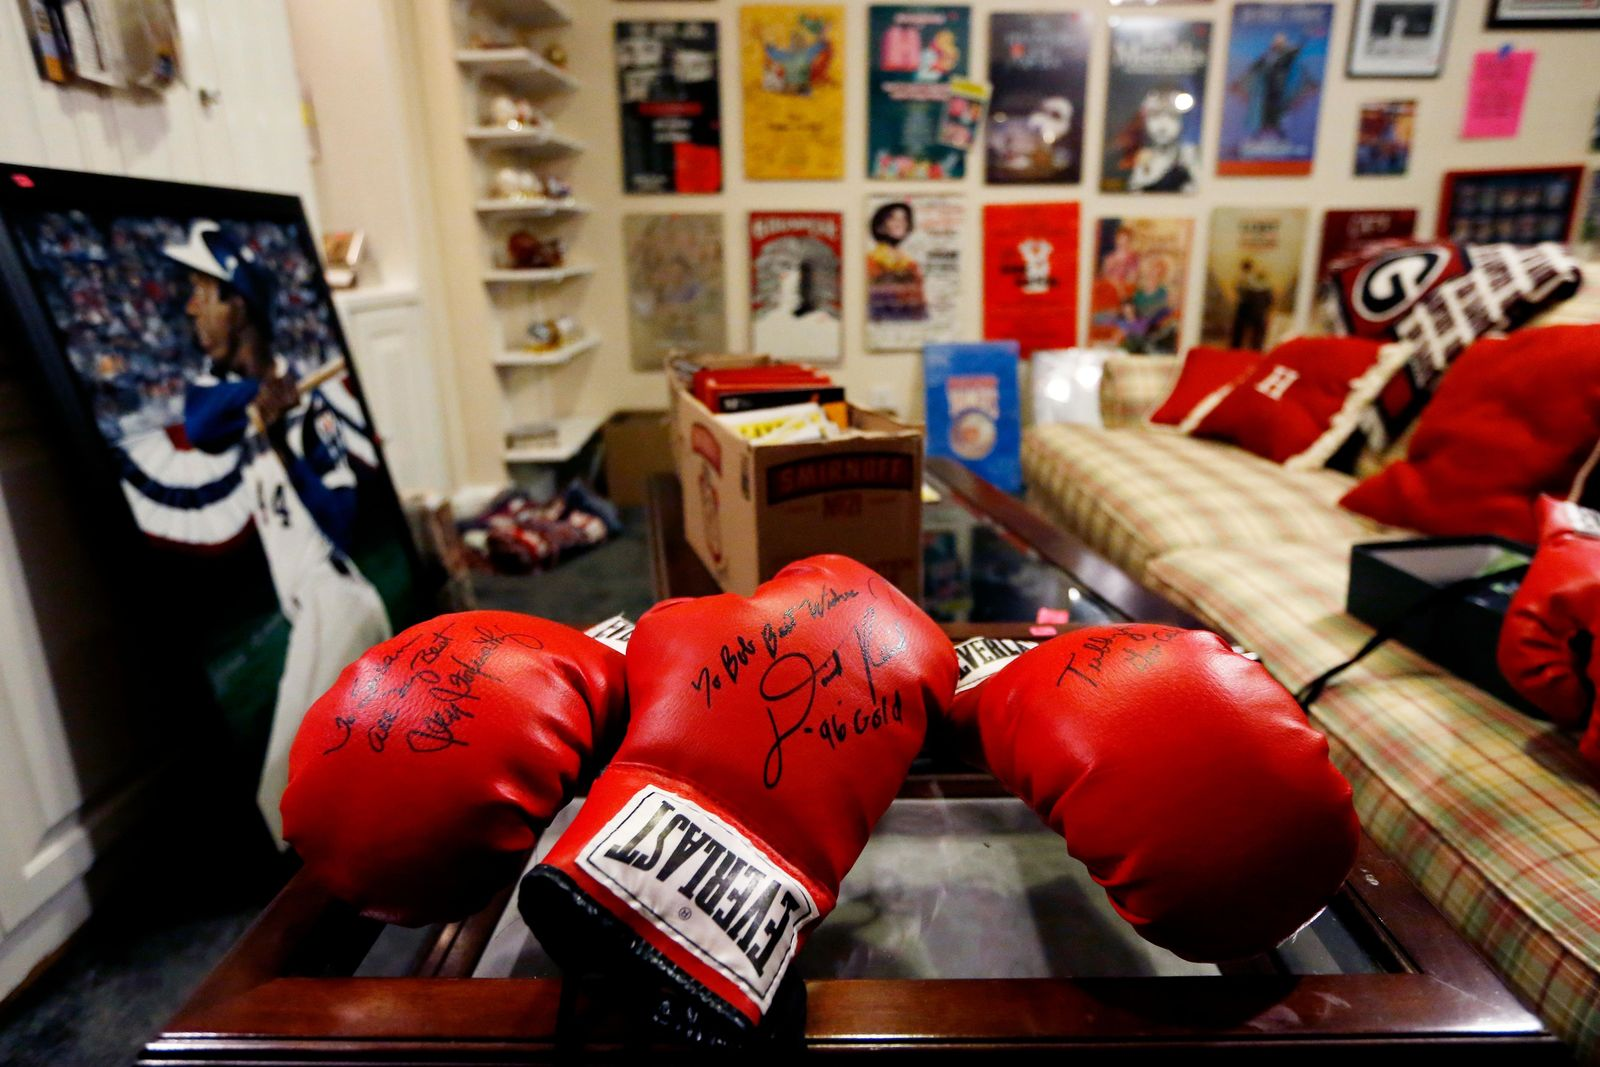 Autographed boxing gloves are seen in Bob Hope's basement, which holds his sports memorabilia collection for sale, Friday, Aug. 23, 2019, in Stone Mountain, Ga.{ } (AP Photo/Andrea Smith)